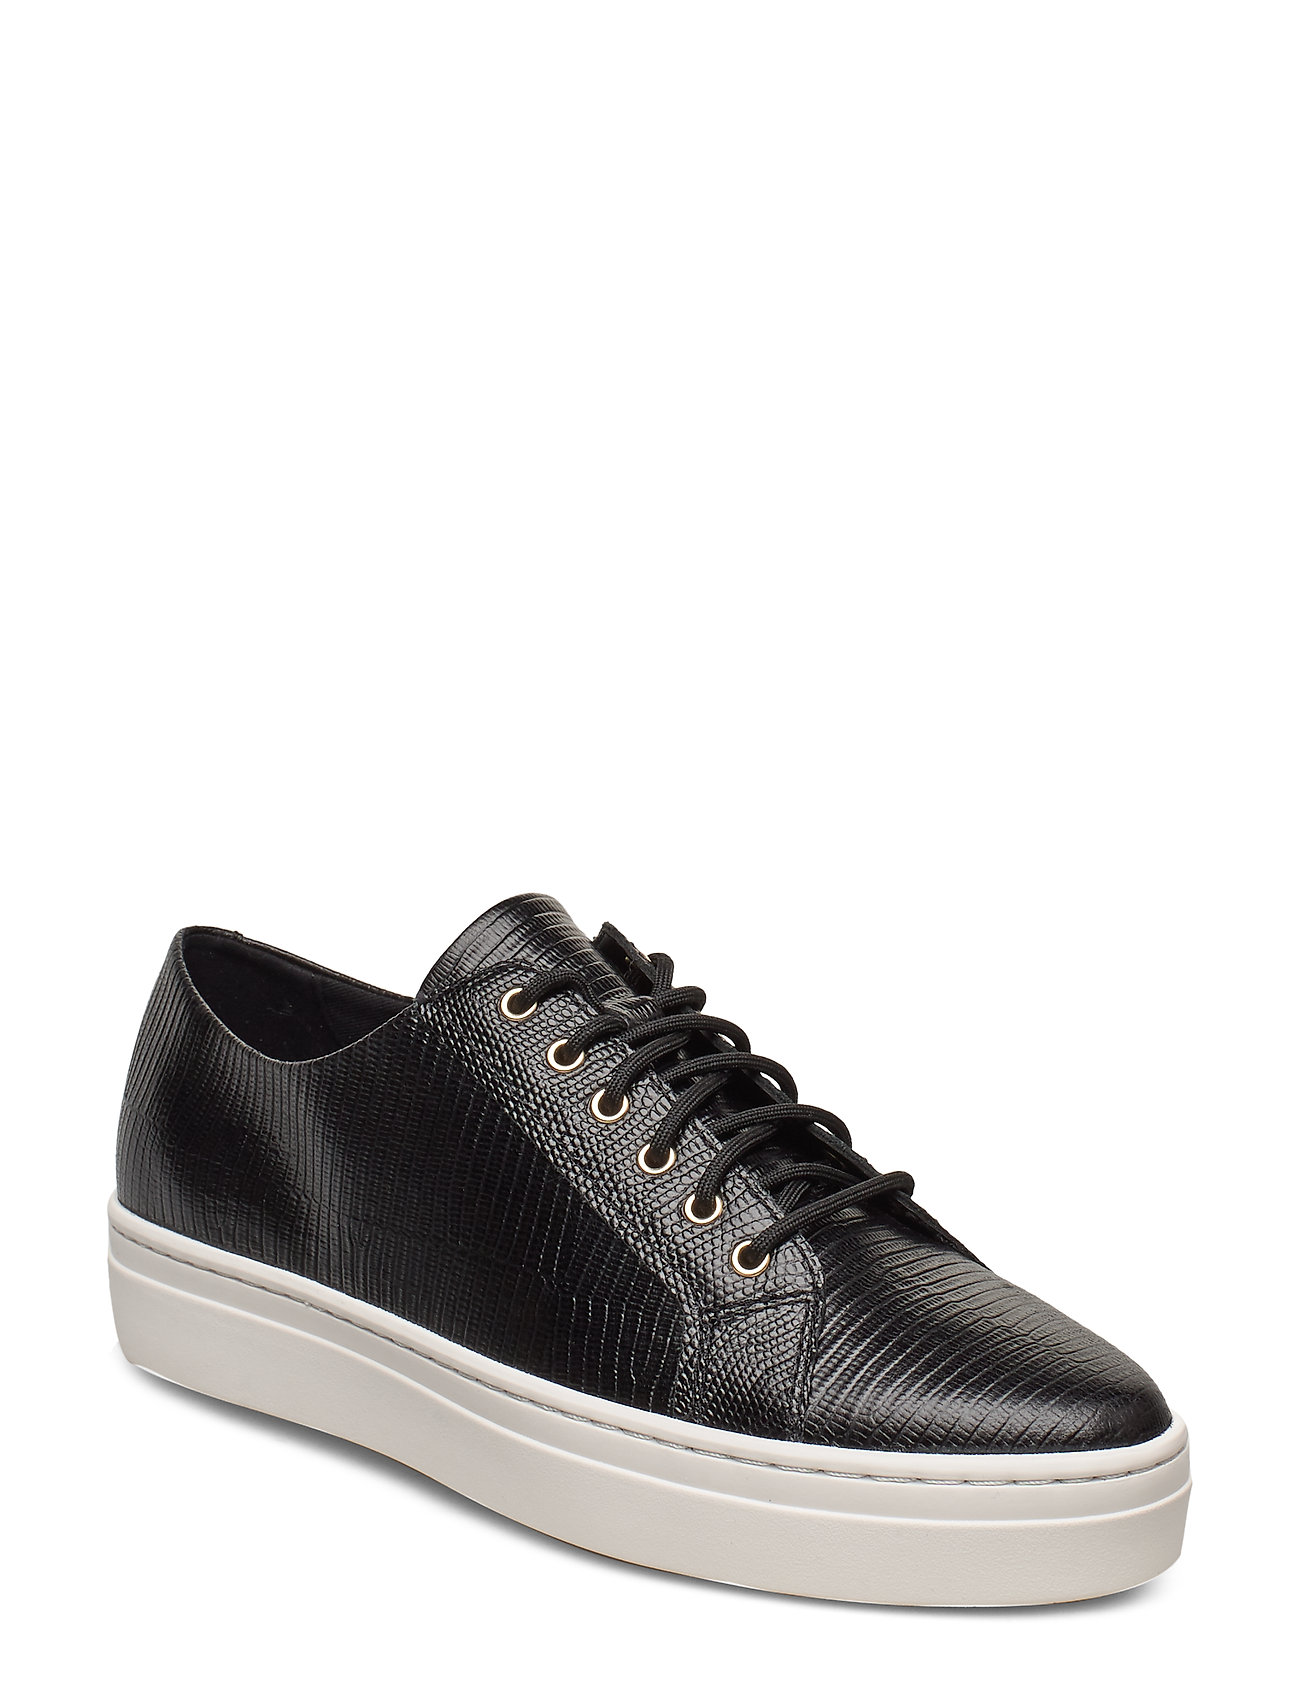 Image of Camille Low-top Sneakers Sort VAGABOND (3344406709)